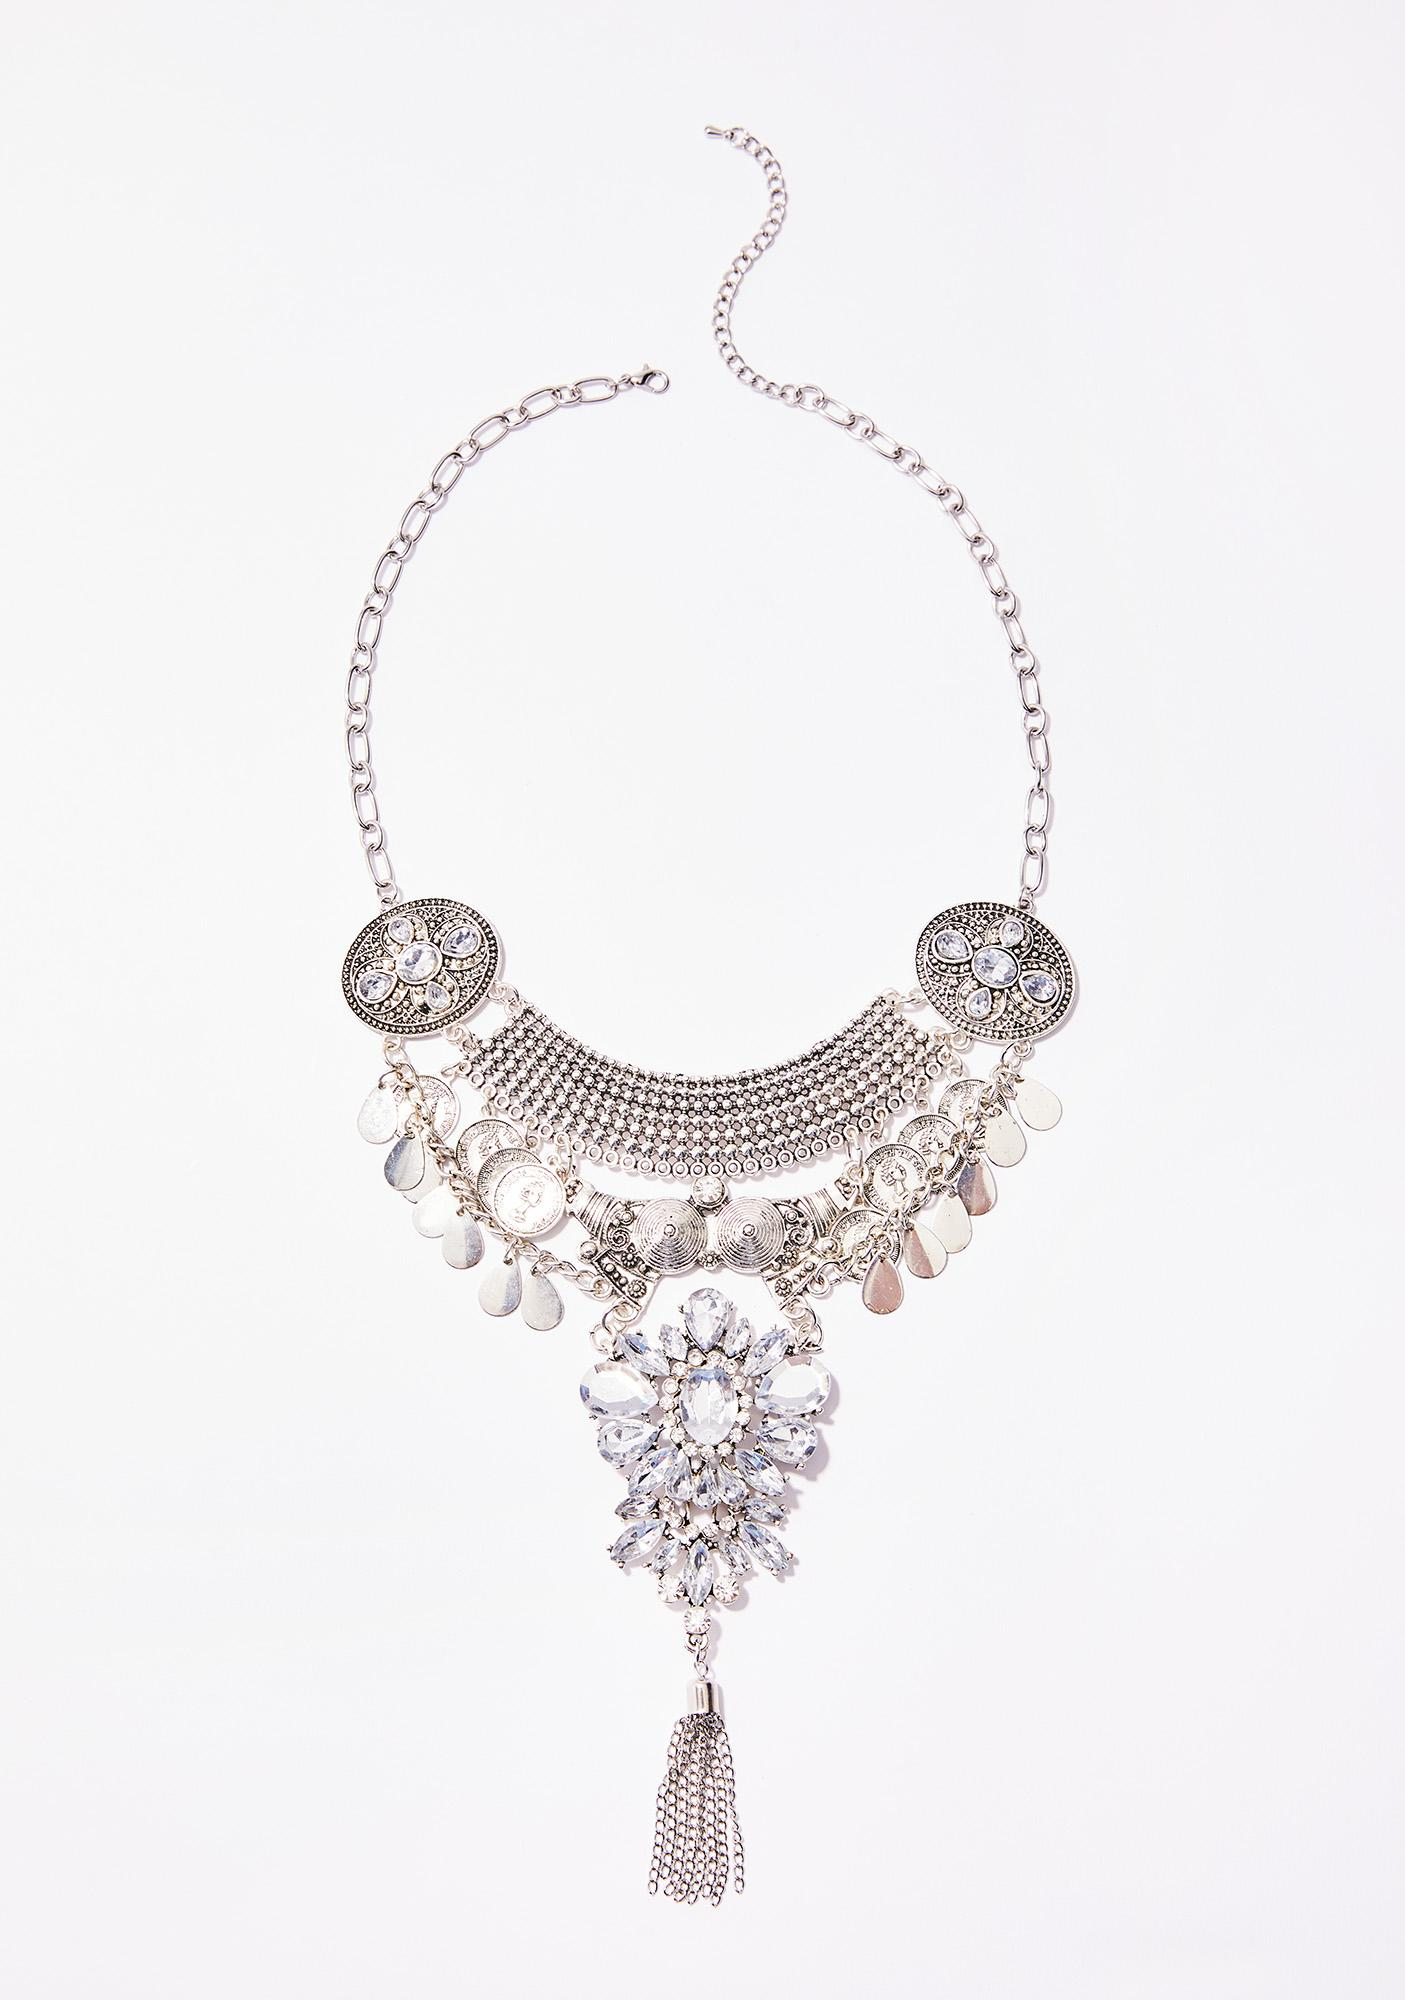 Lil' Delicate Thang Statement Necklace